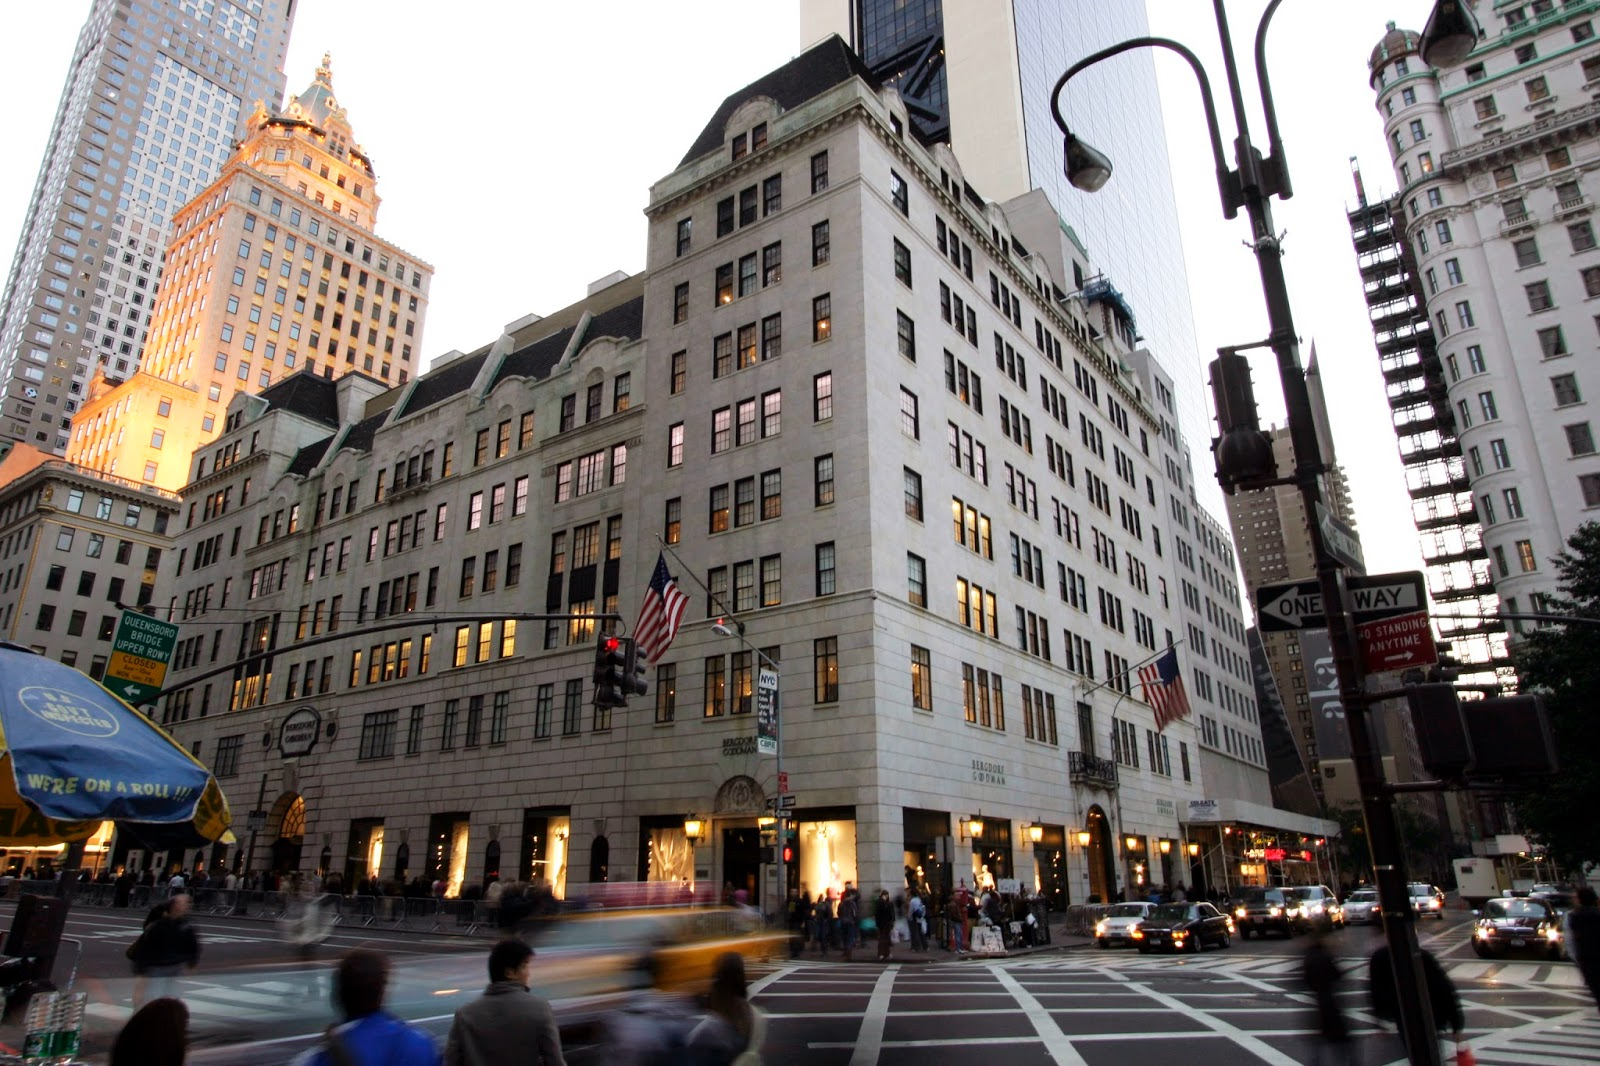 Scatter my ashes at Bergdorfs, Bergdorfs